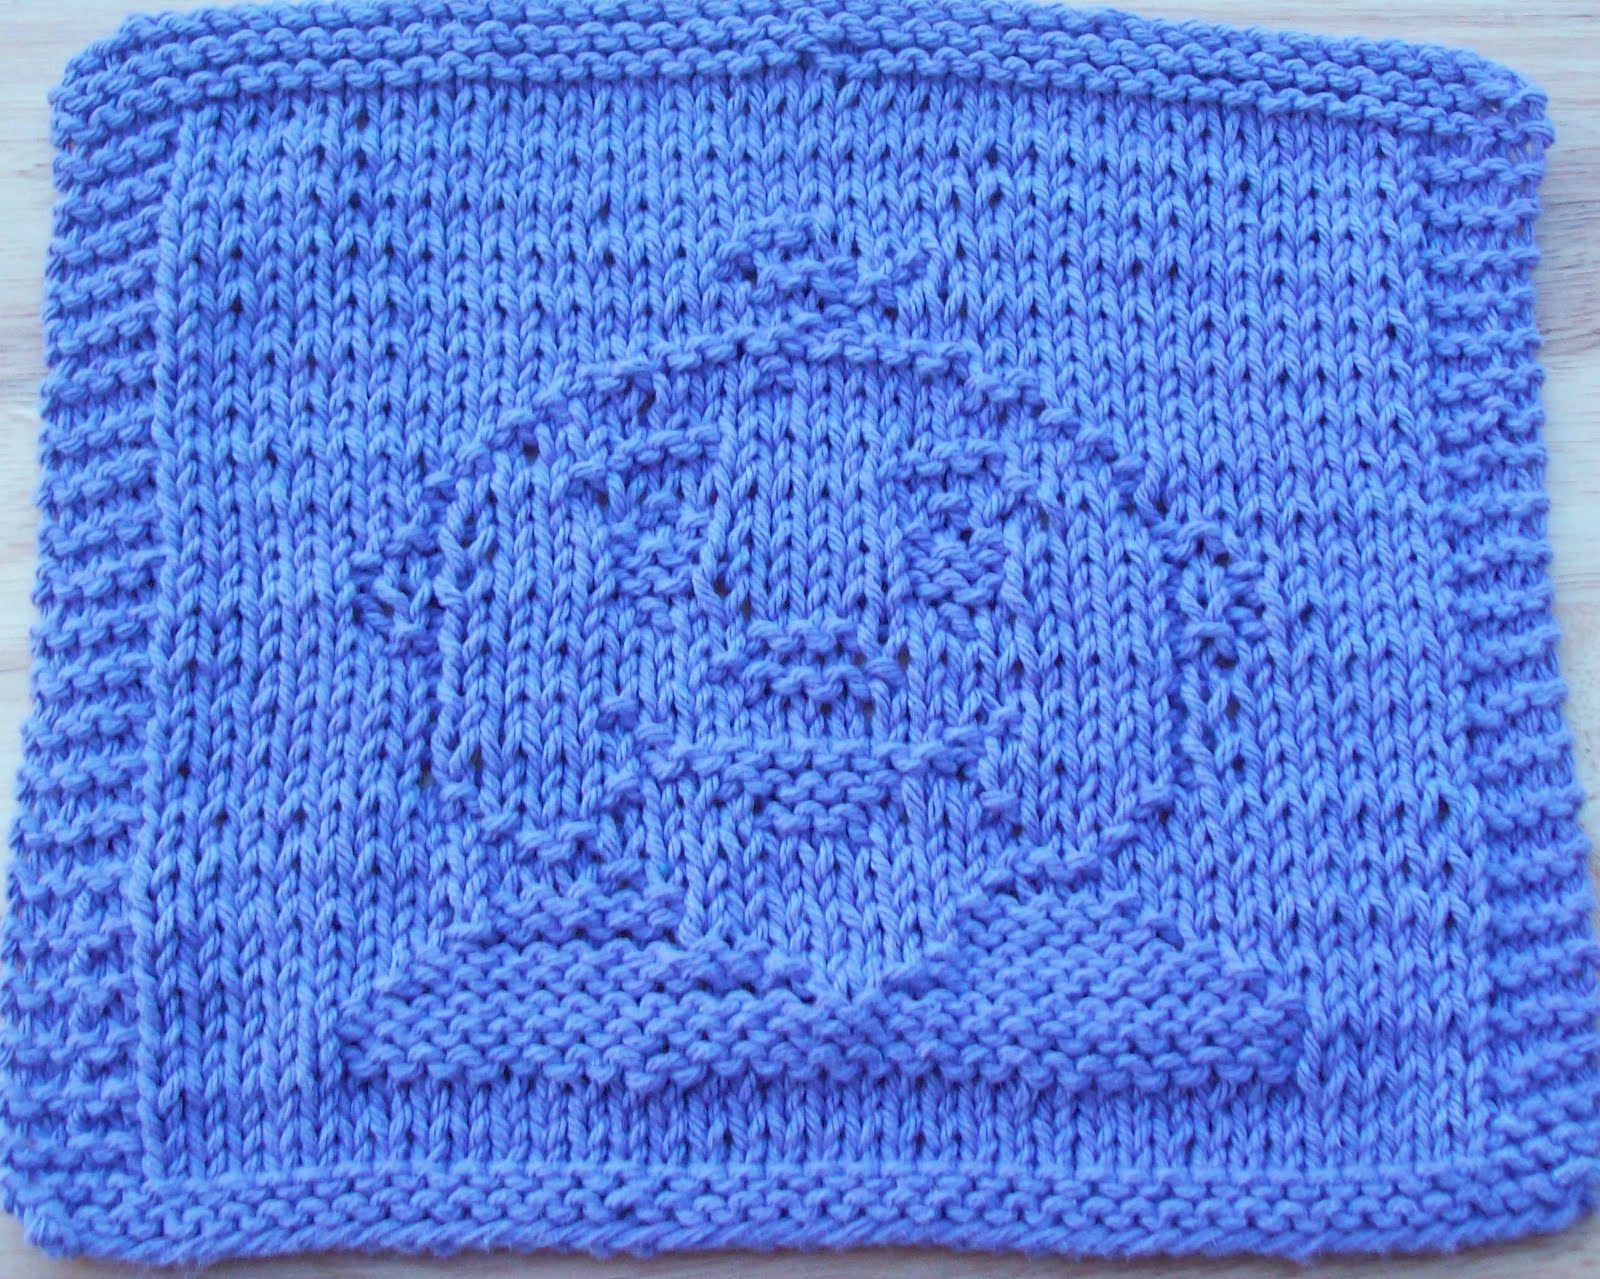 DigKnitty Designs: Baby Face Too Knit Dishcloth Pattern